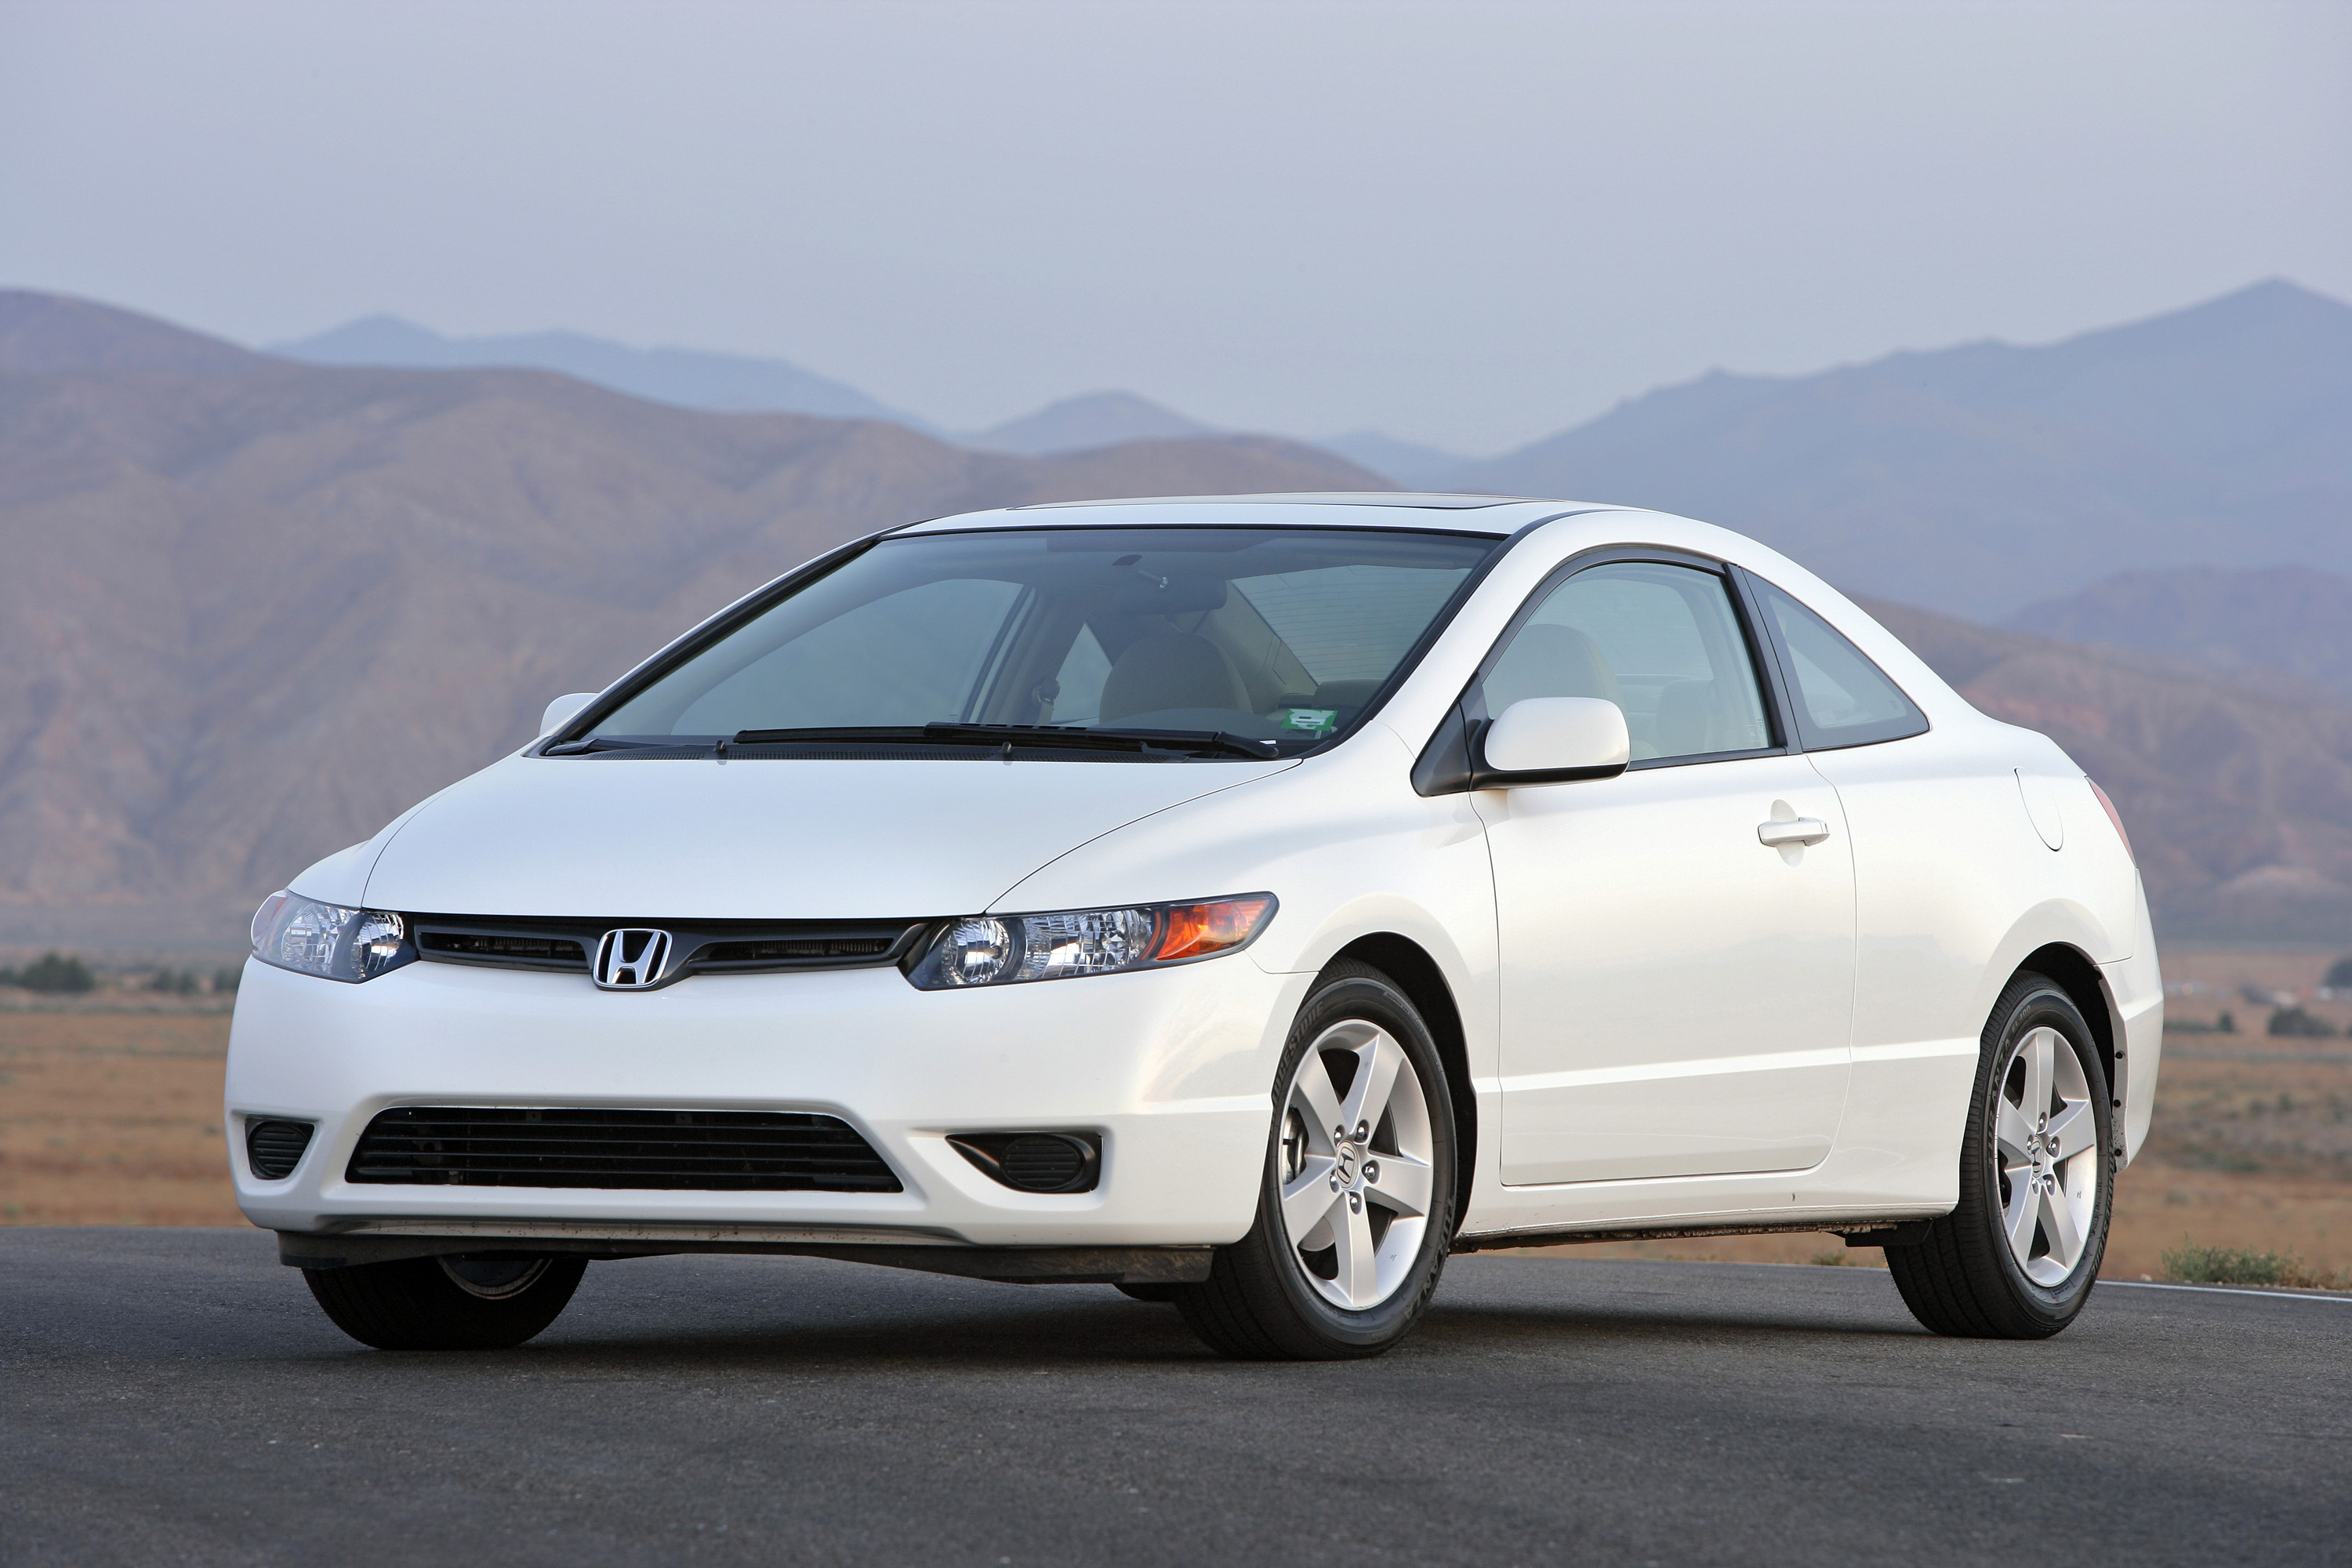 Awesome 2006 Honda Civic Coupe | Top Speed. »